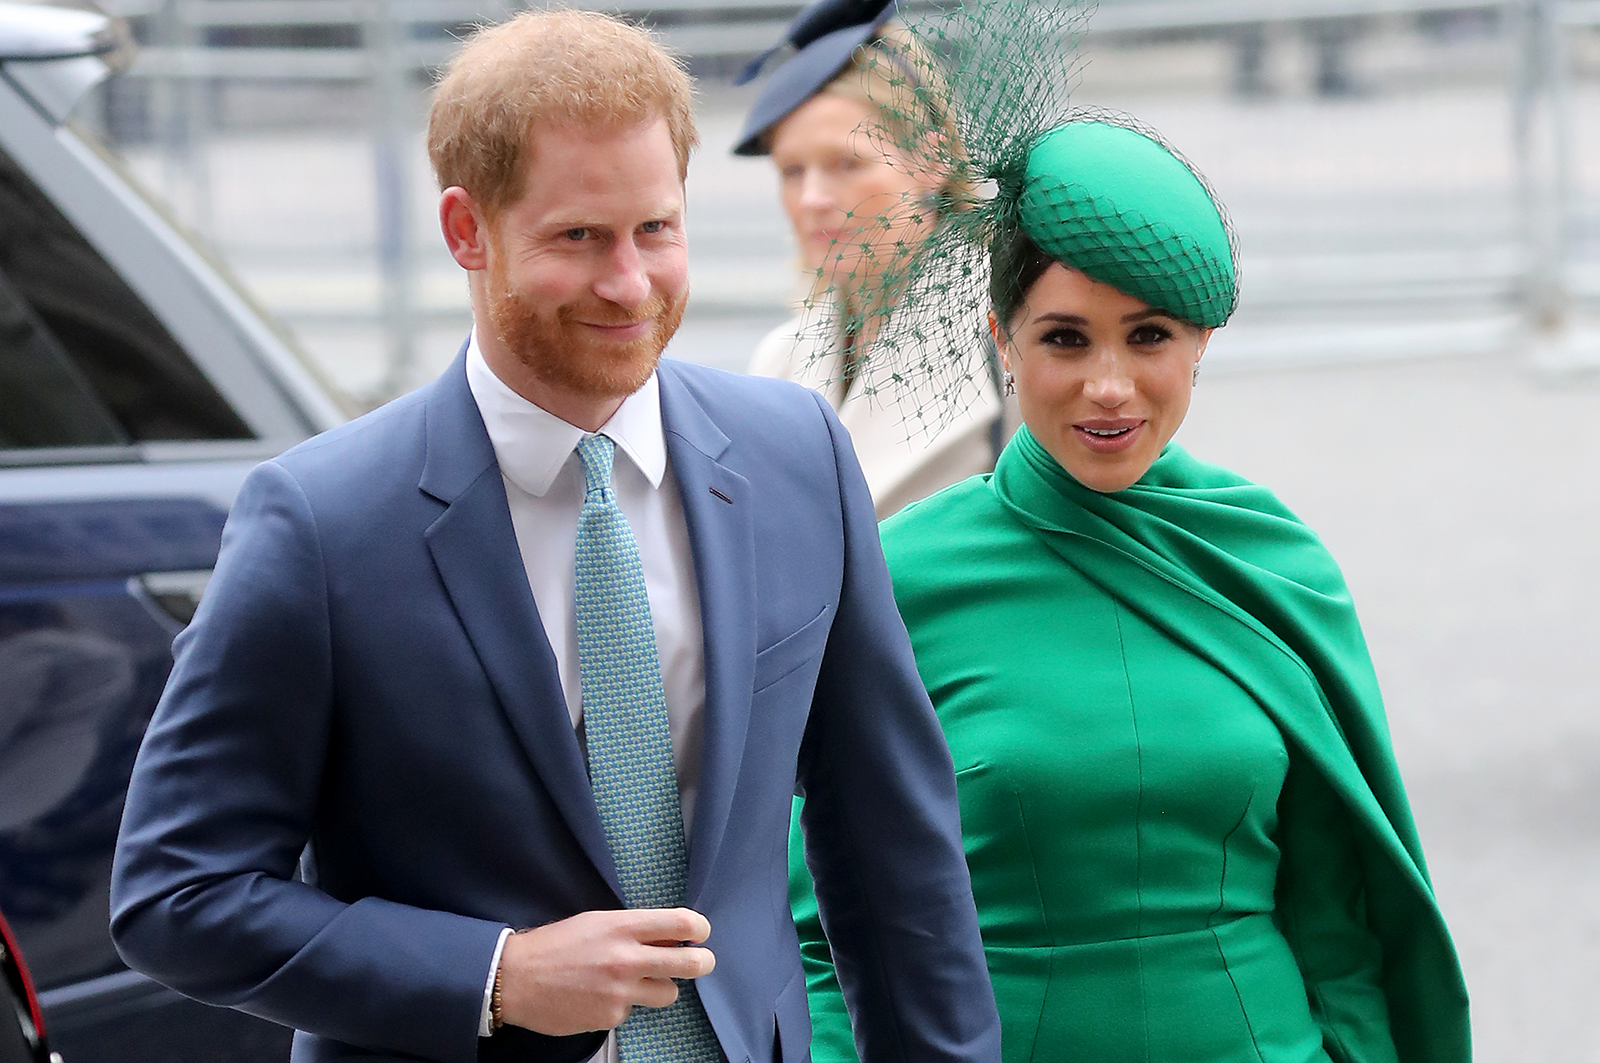 Prince Harry and Meghan, Duchess of Sussex, attend Commonwealth Day Service in London on March 9, 2020.